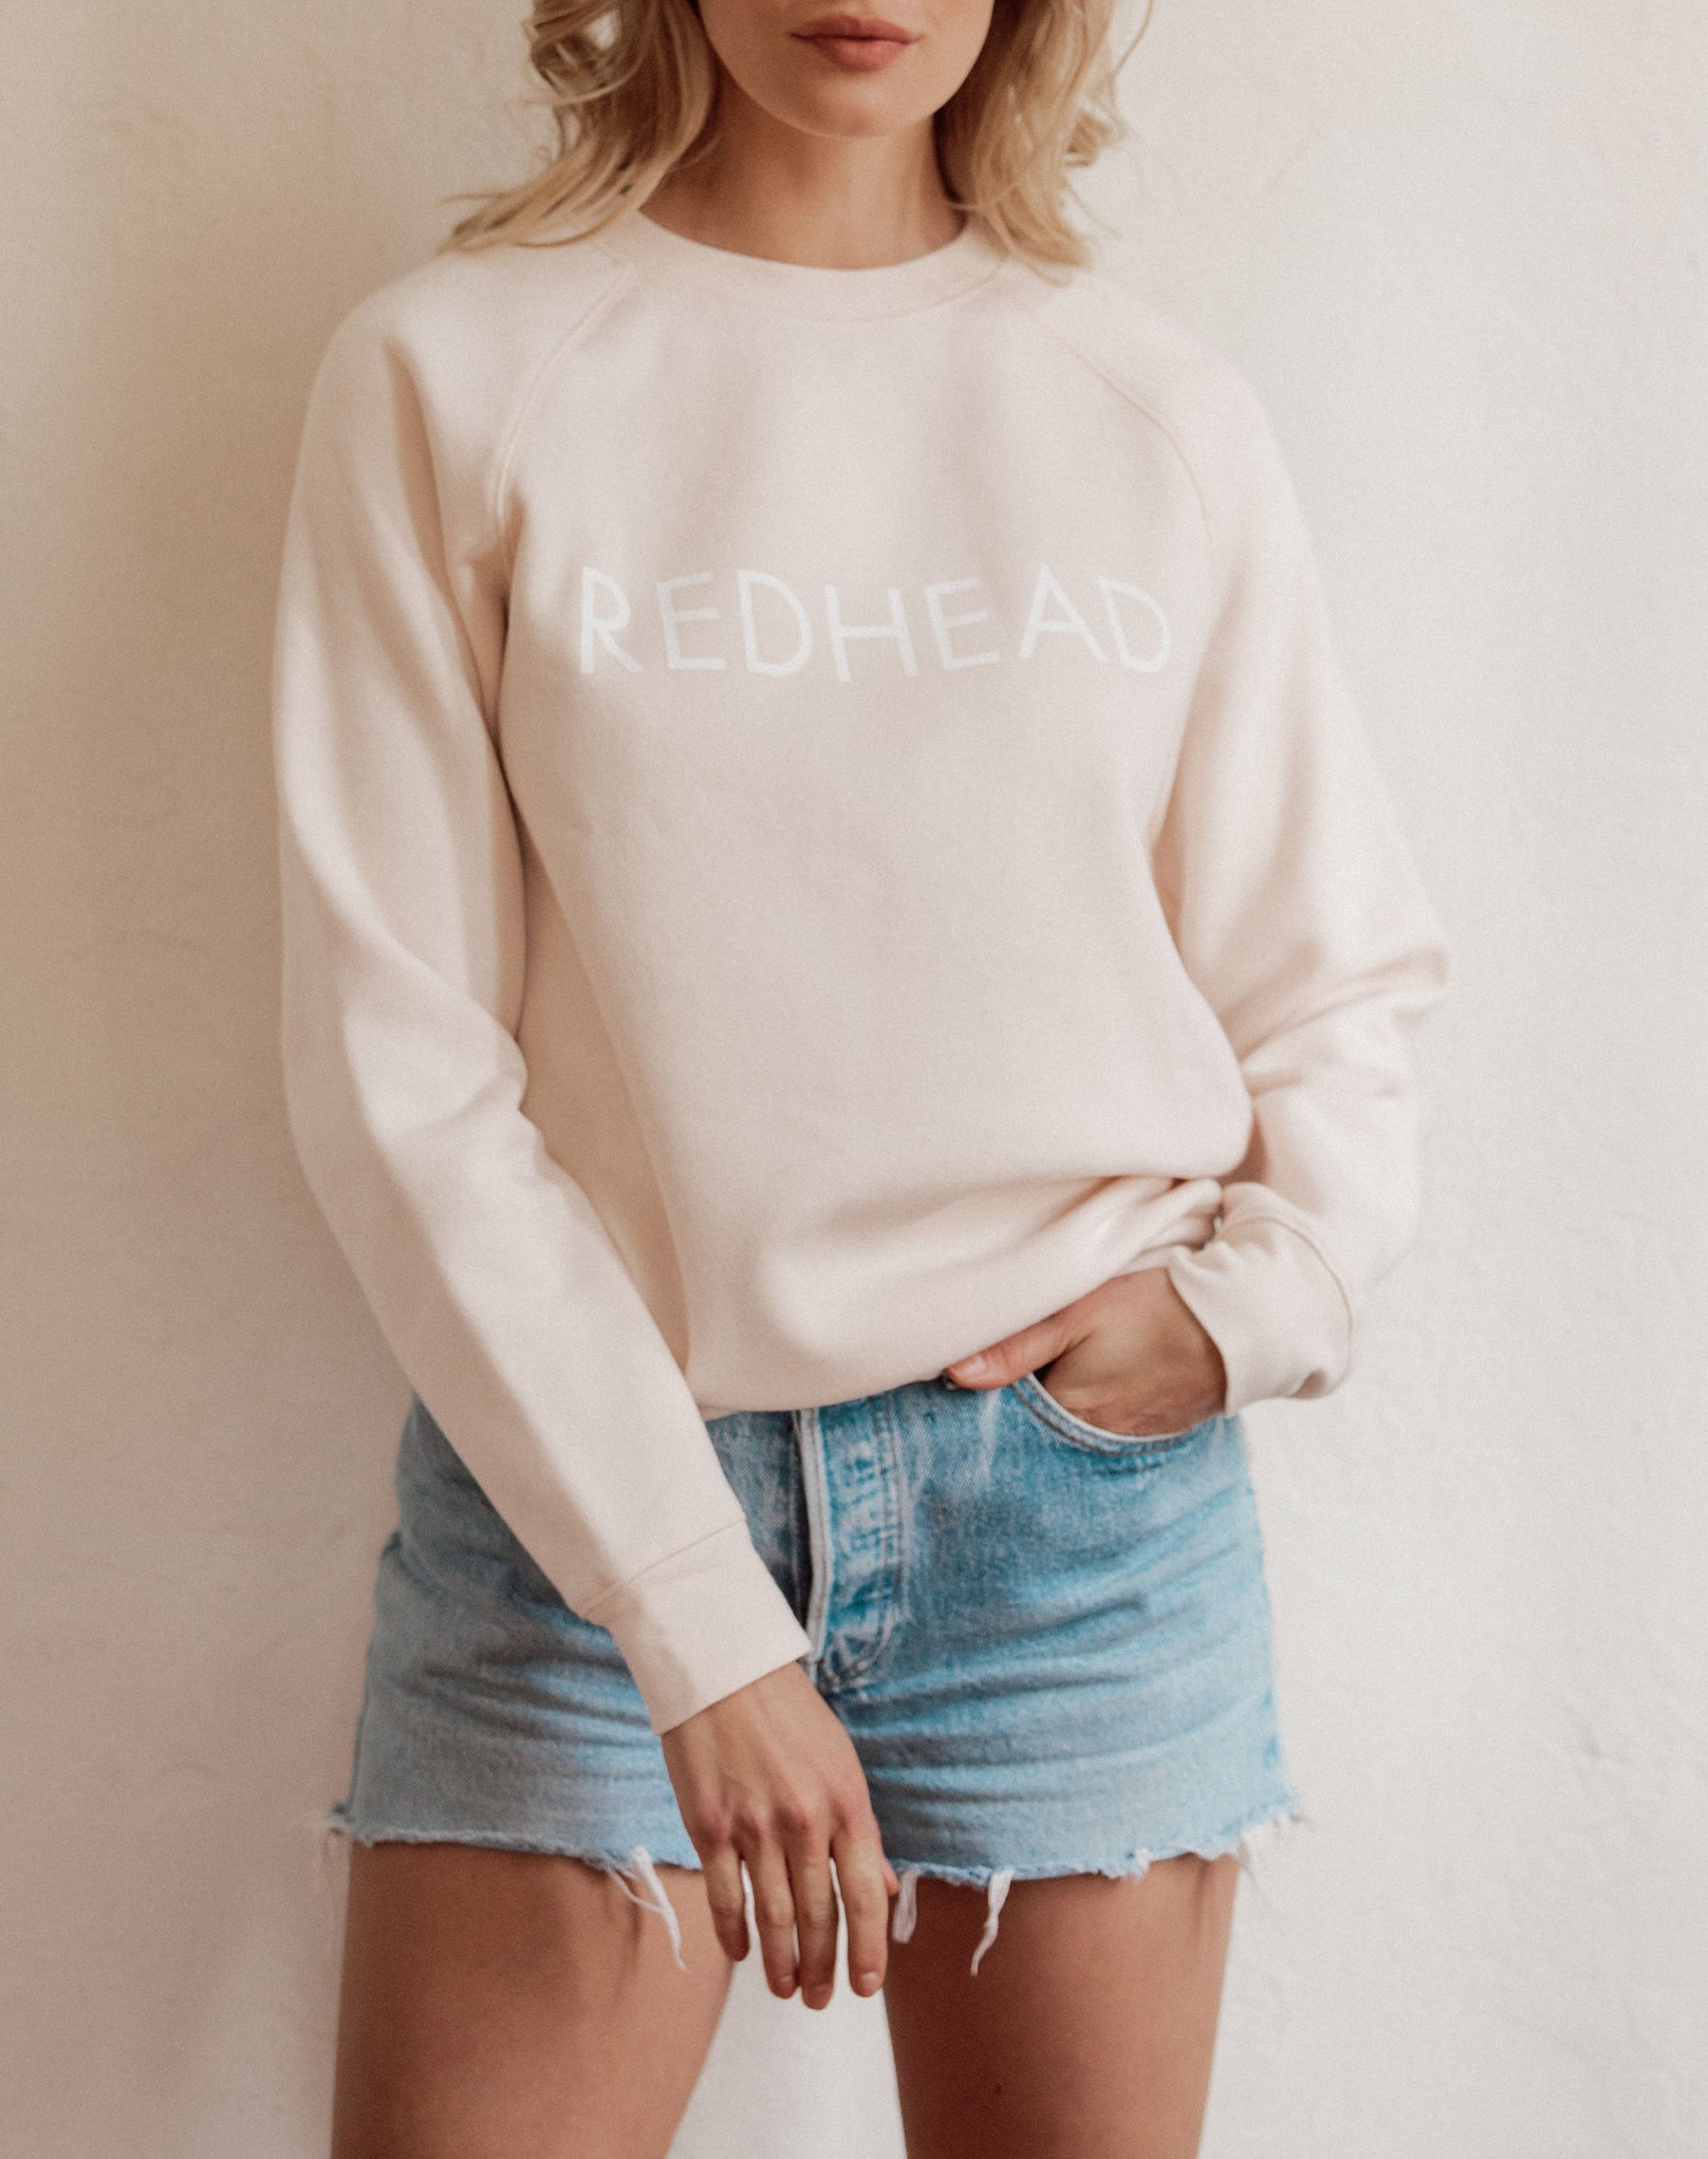 Photo of the Redhead classic crew neck sweatshirt in peach crush by brunette the label.